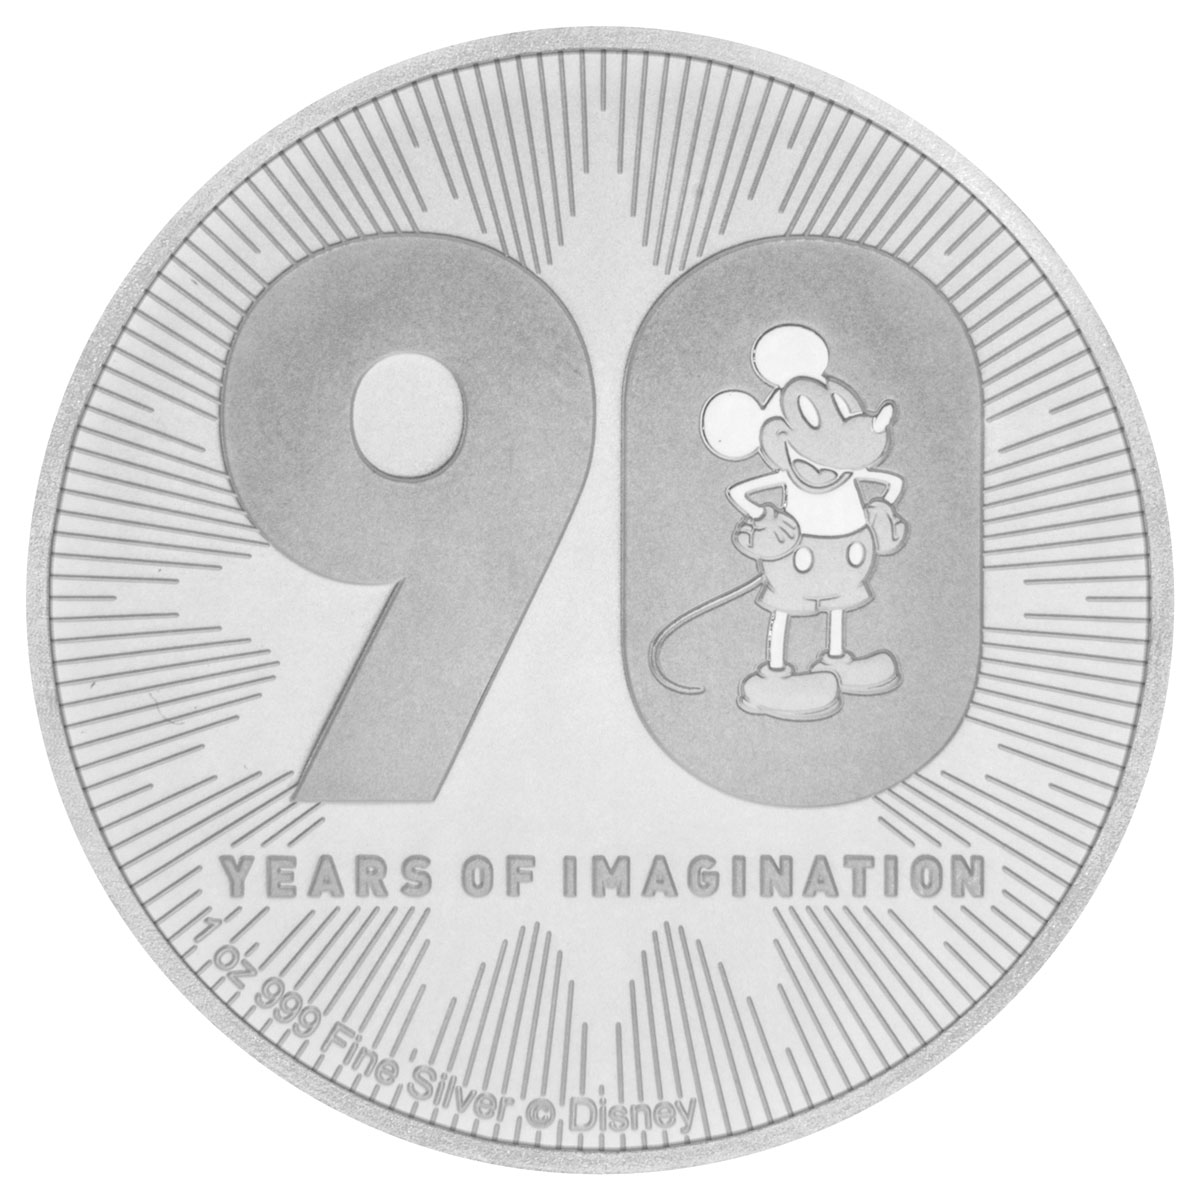 2018 Niue 1 oz Silver Disney Series - Mickey Mouse 90th Anniversary $2 Coin GEM BU